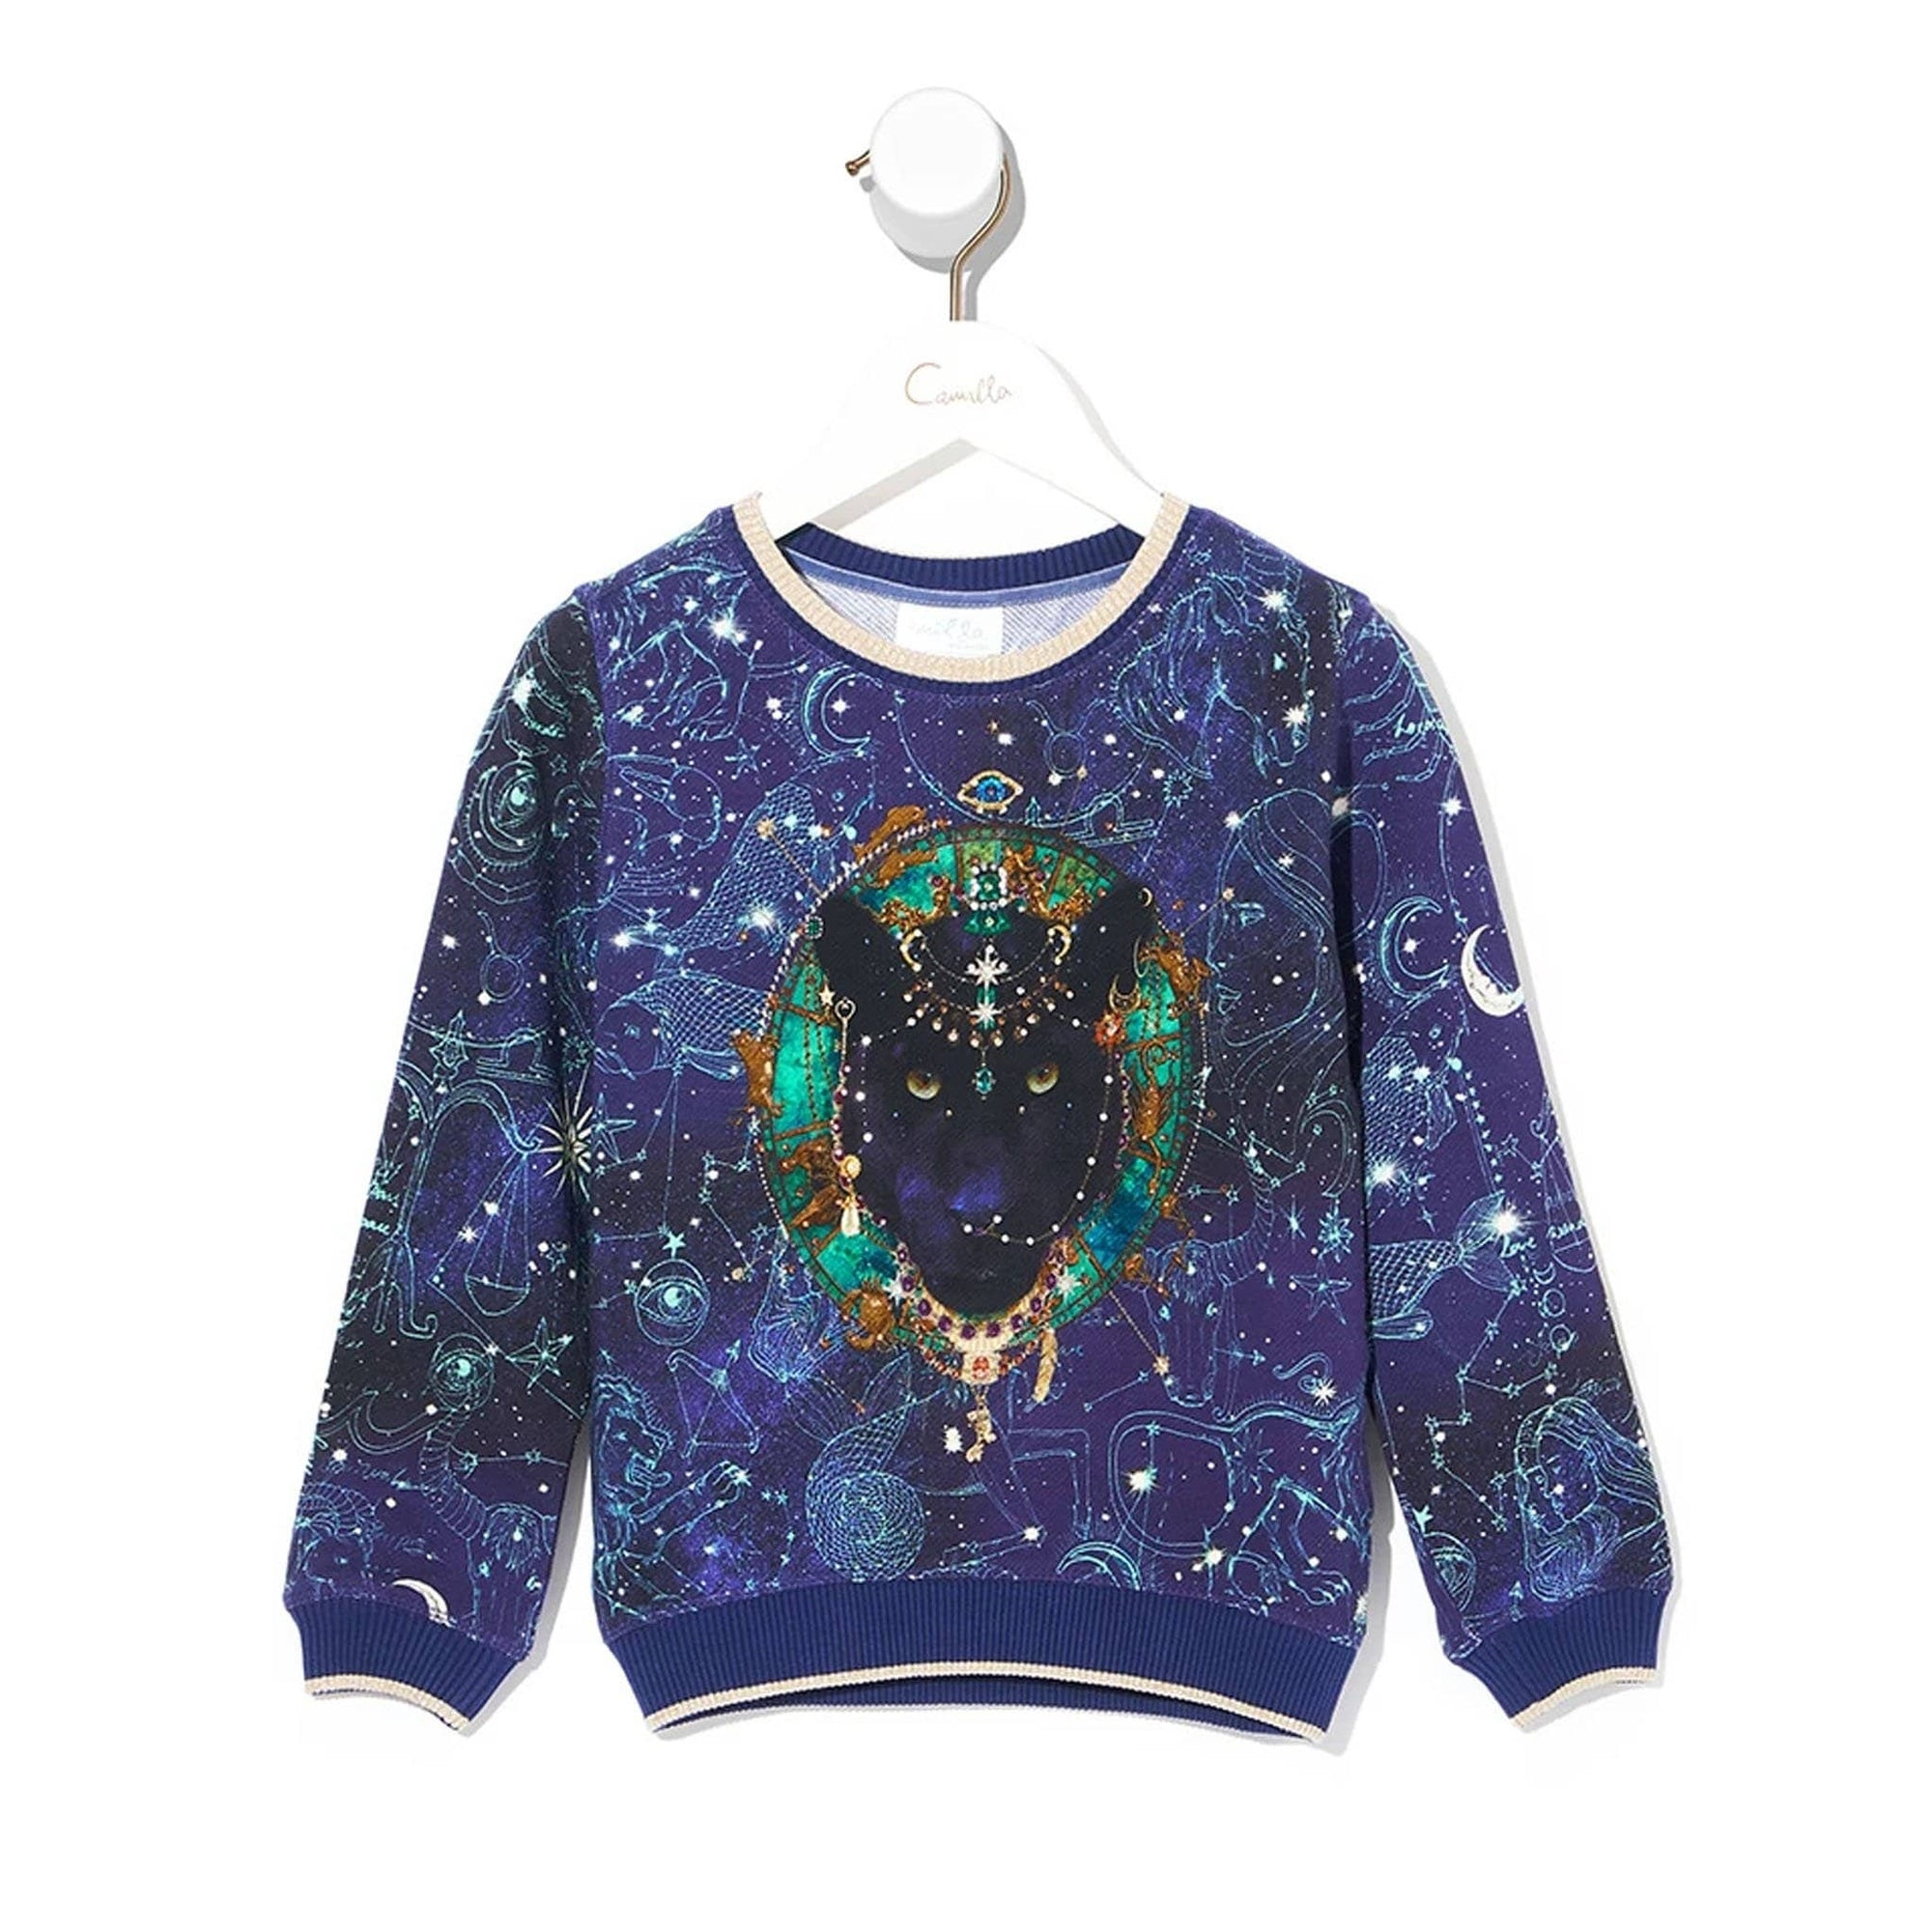 Camilla Stargazers Daughter Infants Sweater